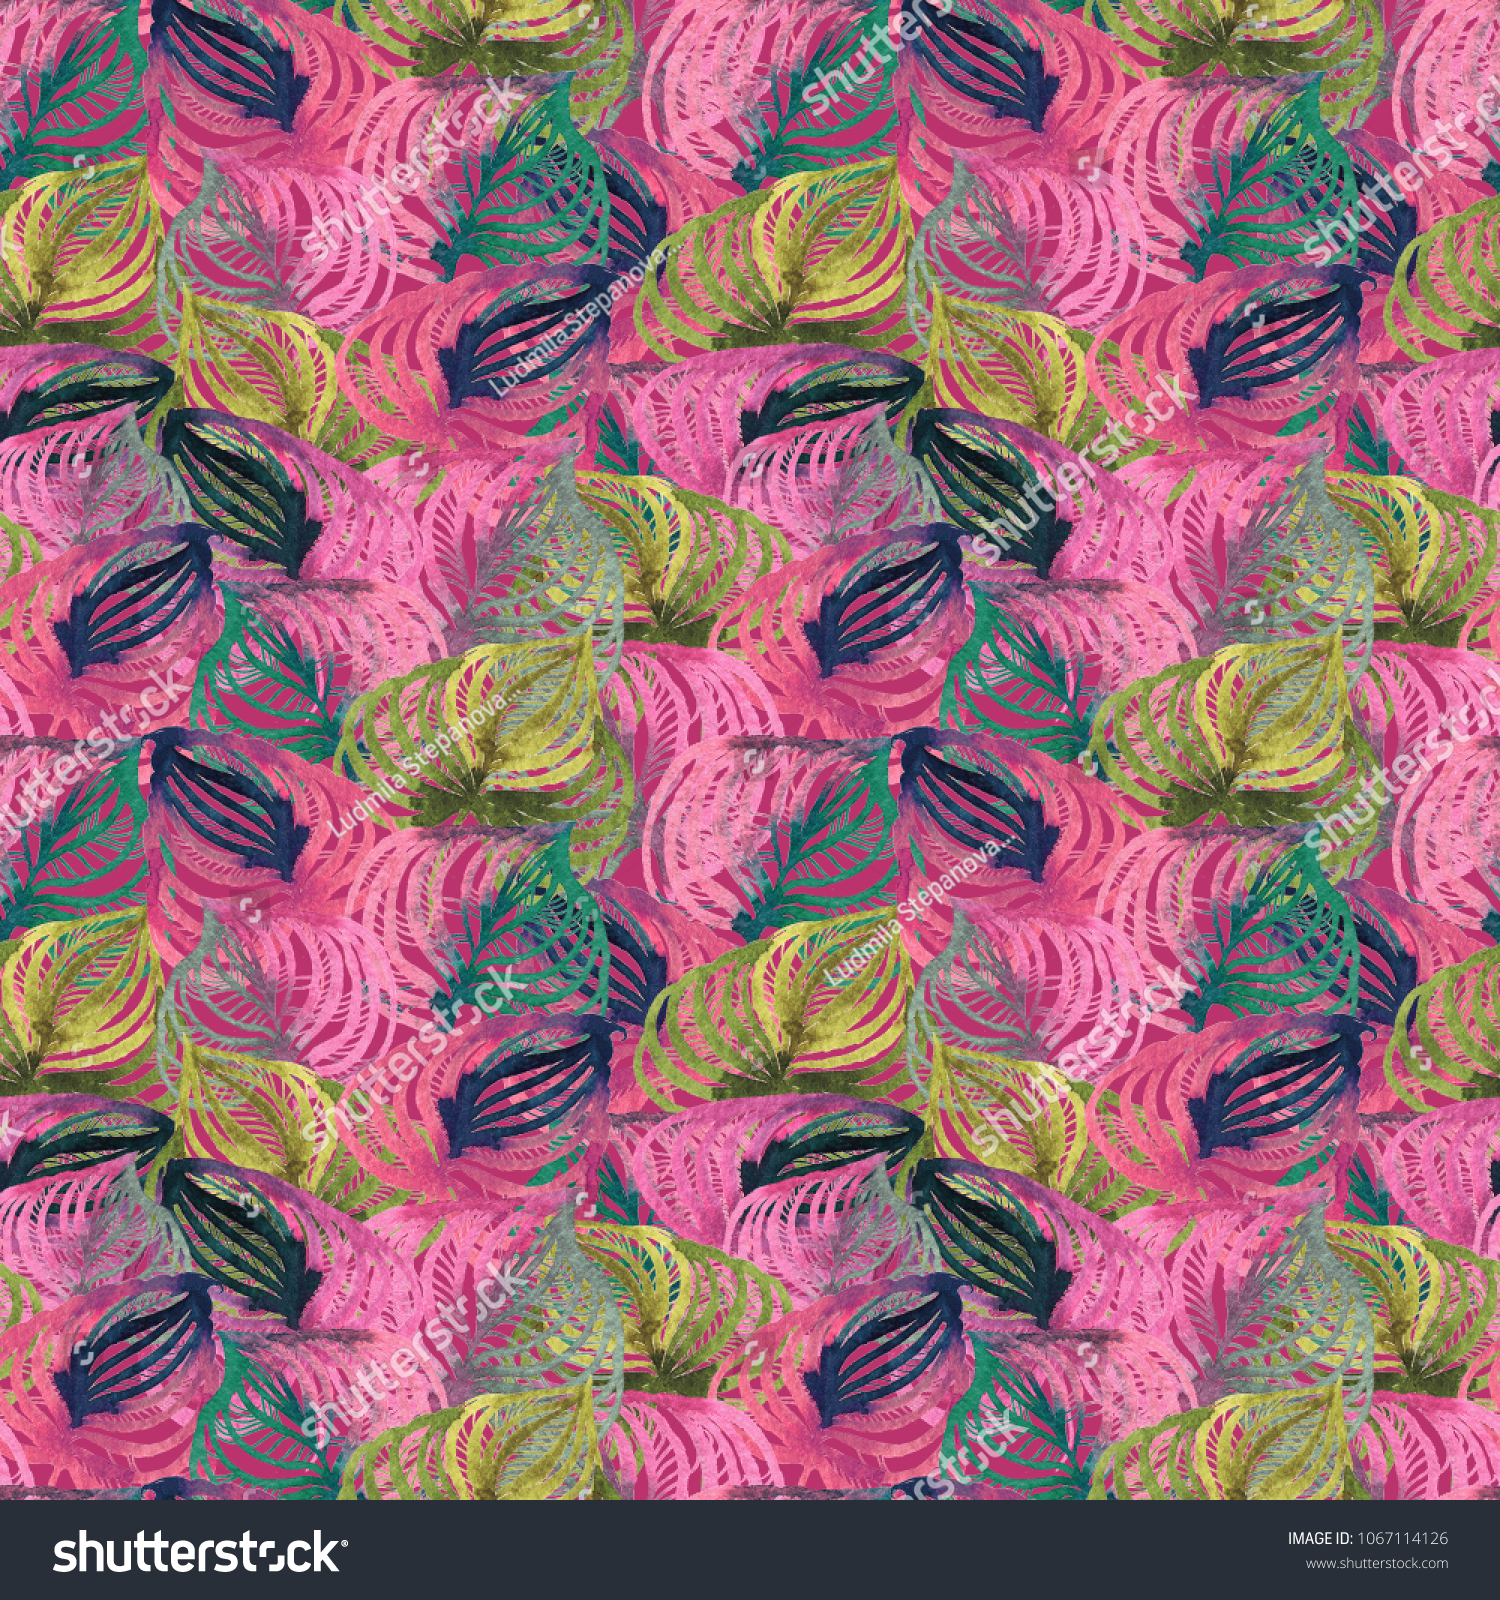 Watercolor Seamless Floral Pattern High Resolution Stock